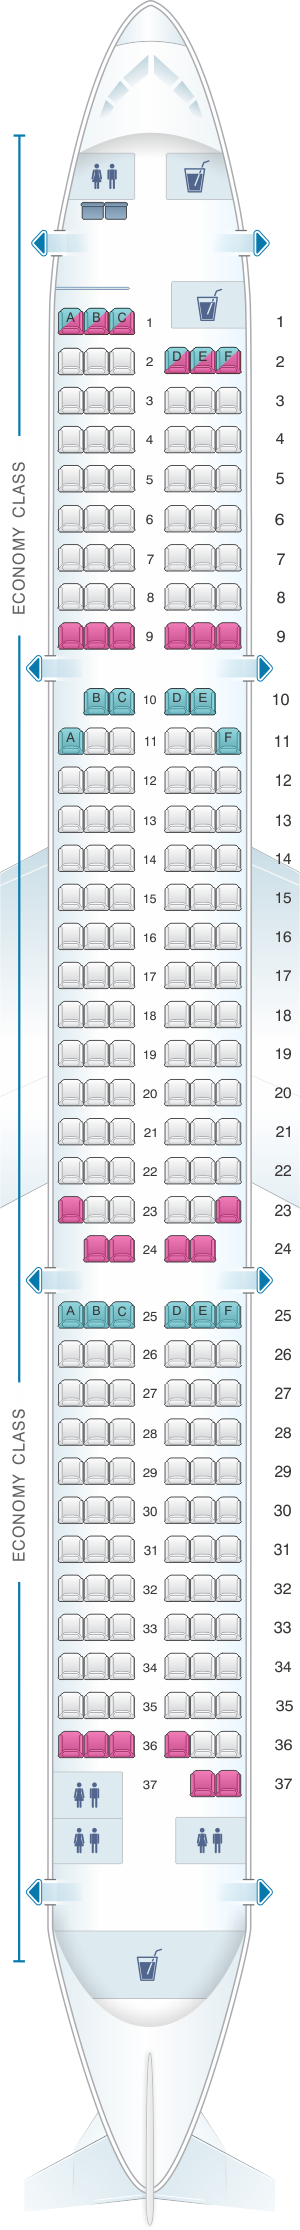 Seat map for Novair Airbus A321 200